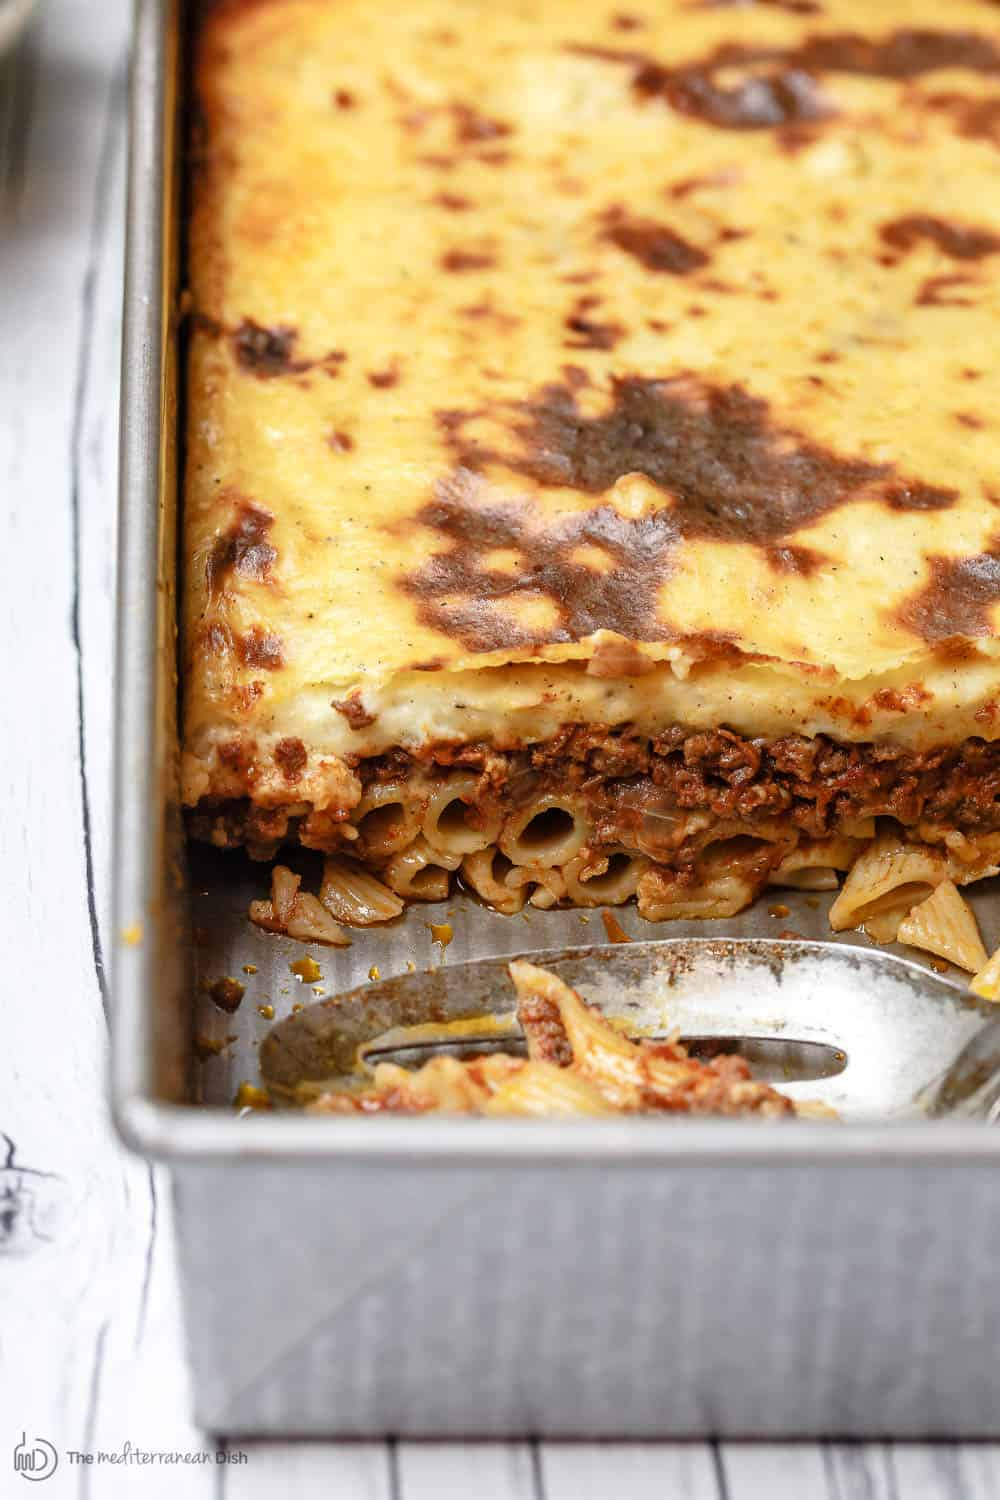 Greek Pastitsio Recipe | The Mediterranean Dish. A Delectable Greek Baked  Pasta Casserole With Flavor